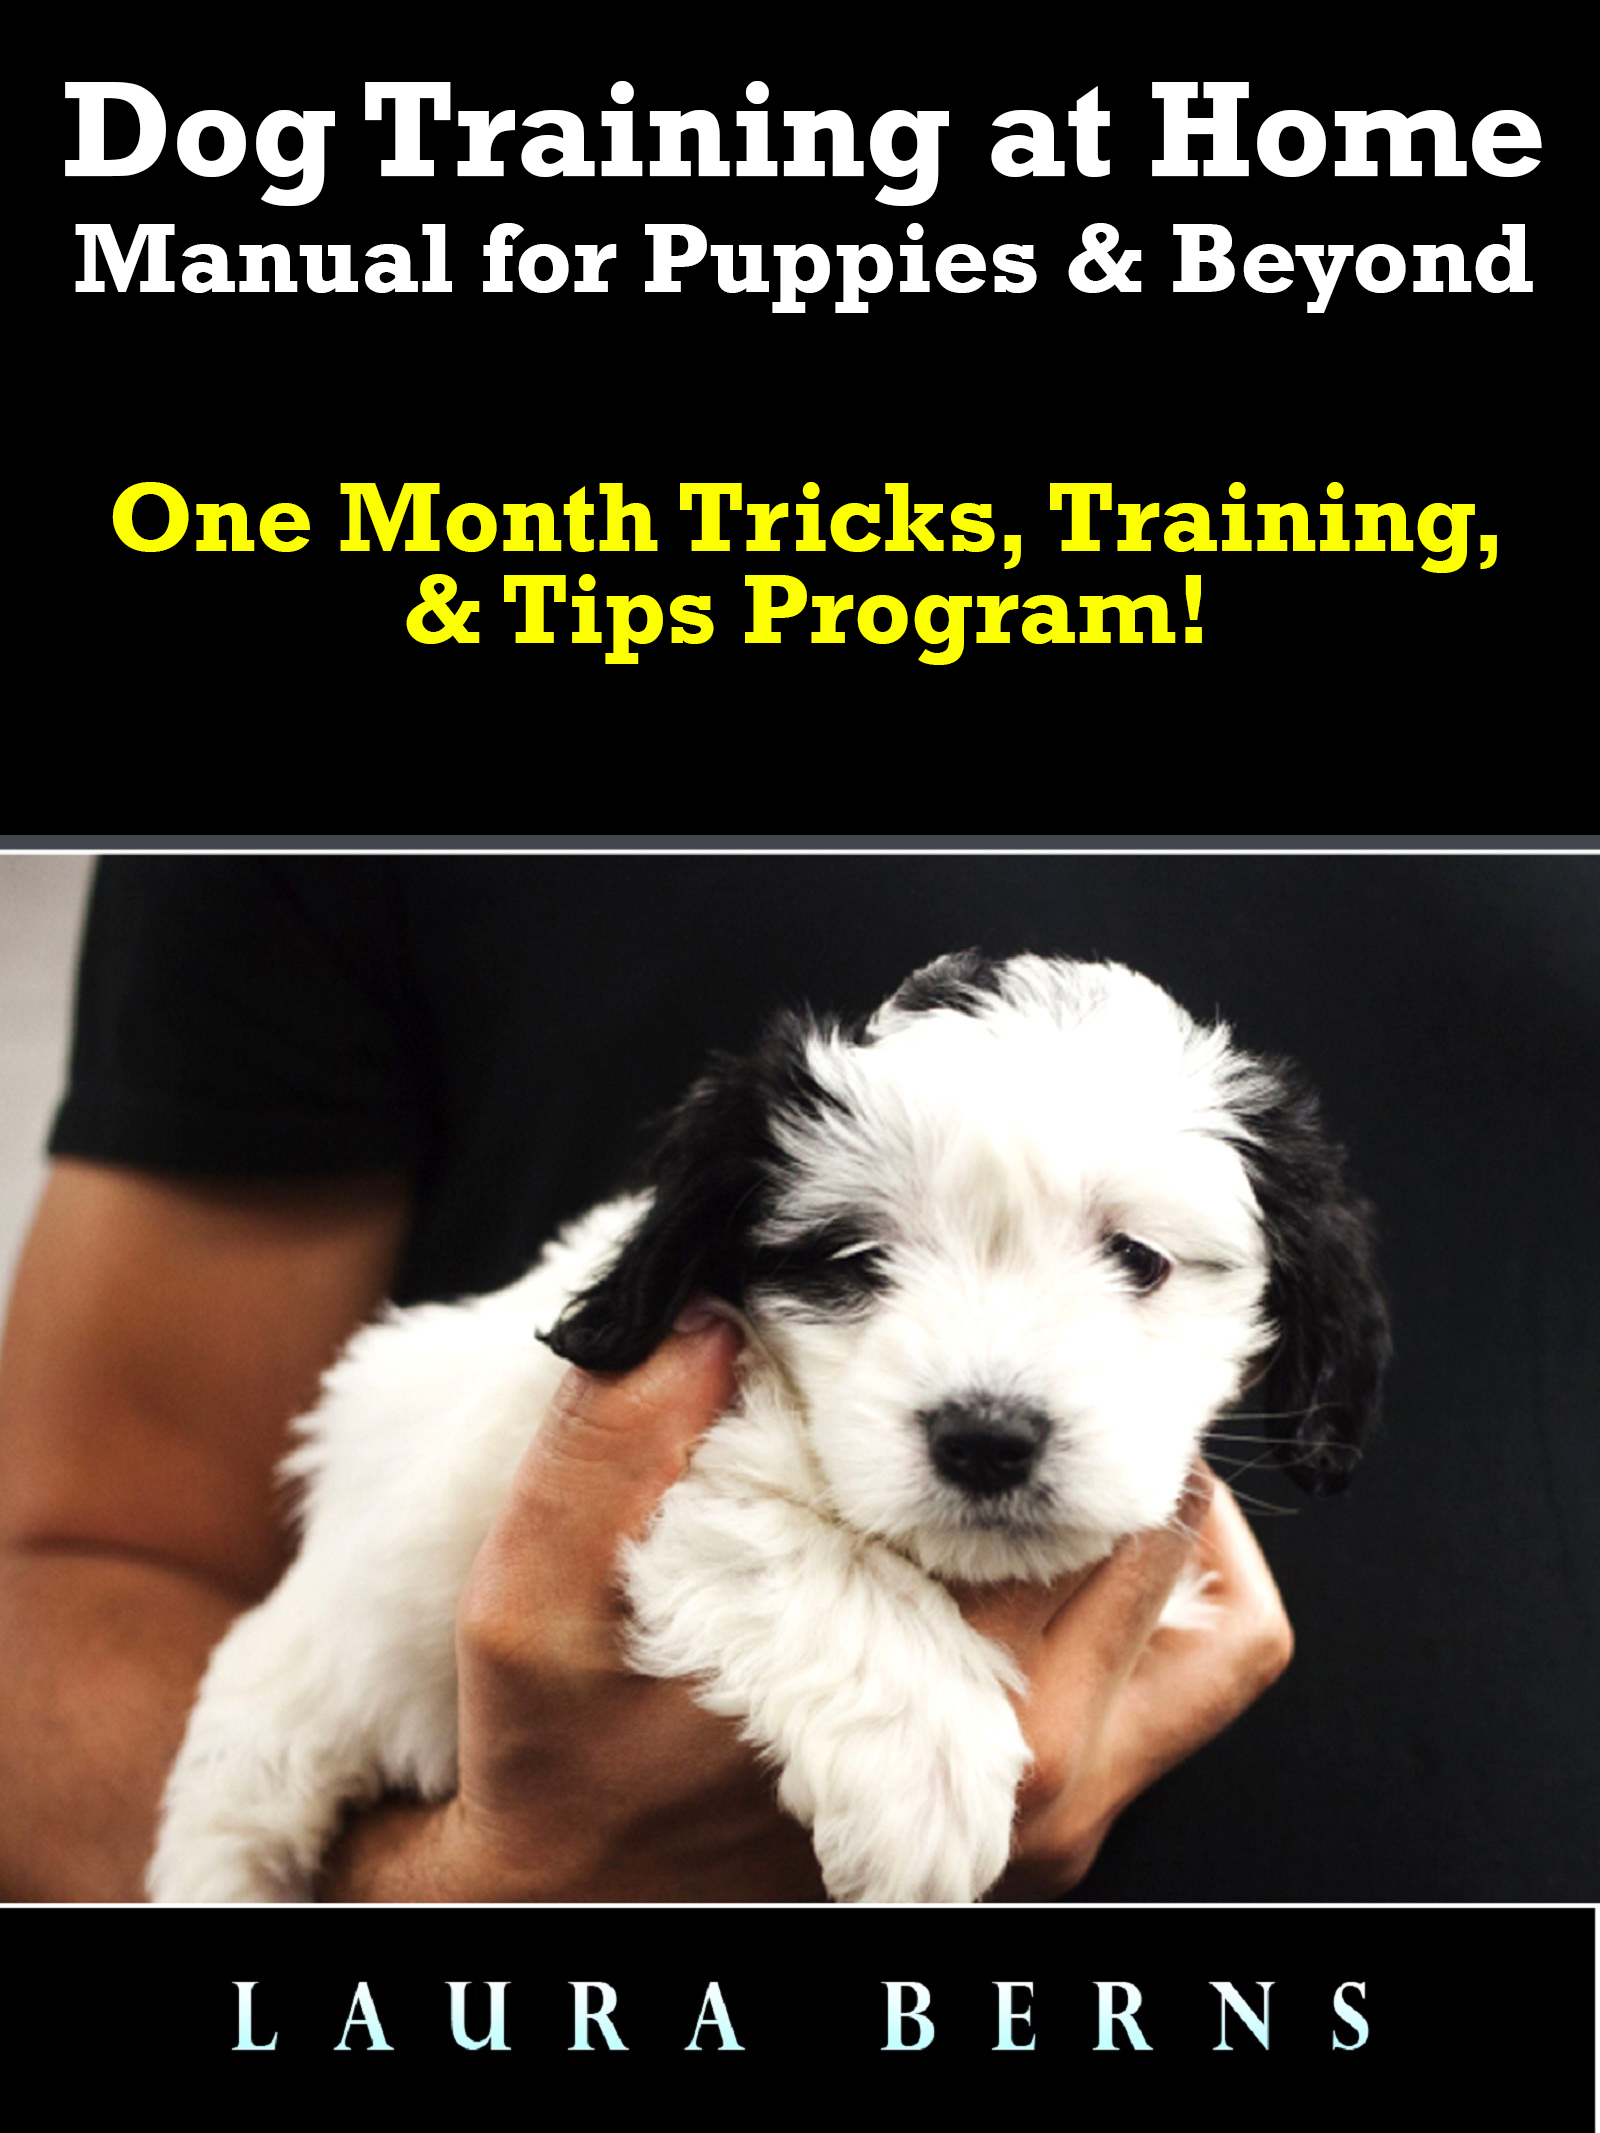 Dog training at home manual for puppies & beyond: one month tricks, training, & tips program!